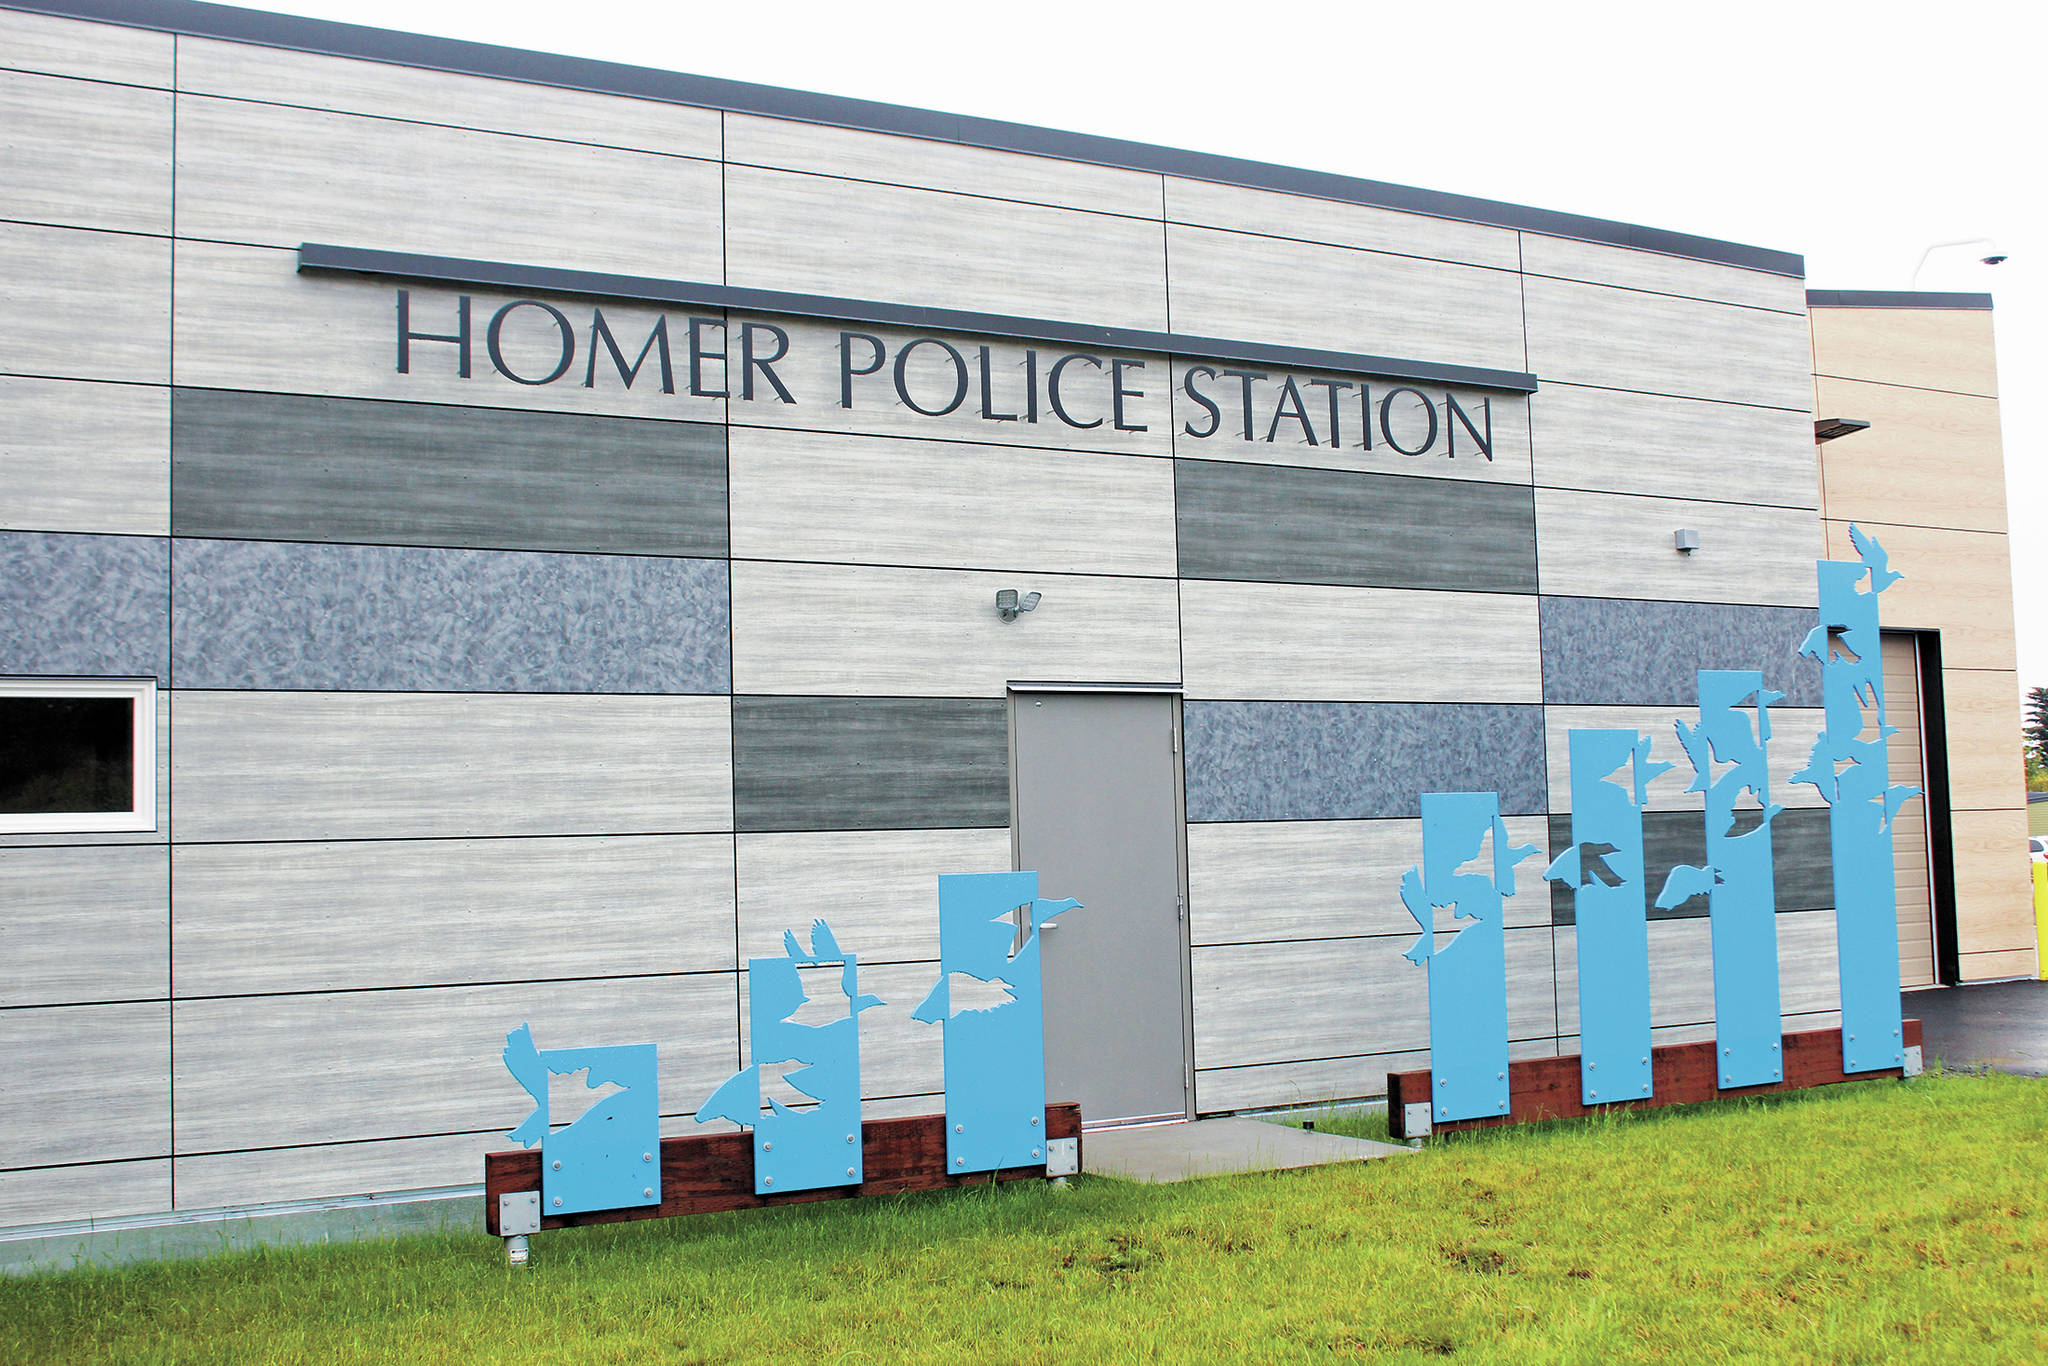 The Homer Police Station as seen Thursday, Sept. 24, 2020 in Homer, Alaska. (Photo by Megan Pacer/Homer News)